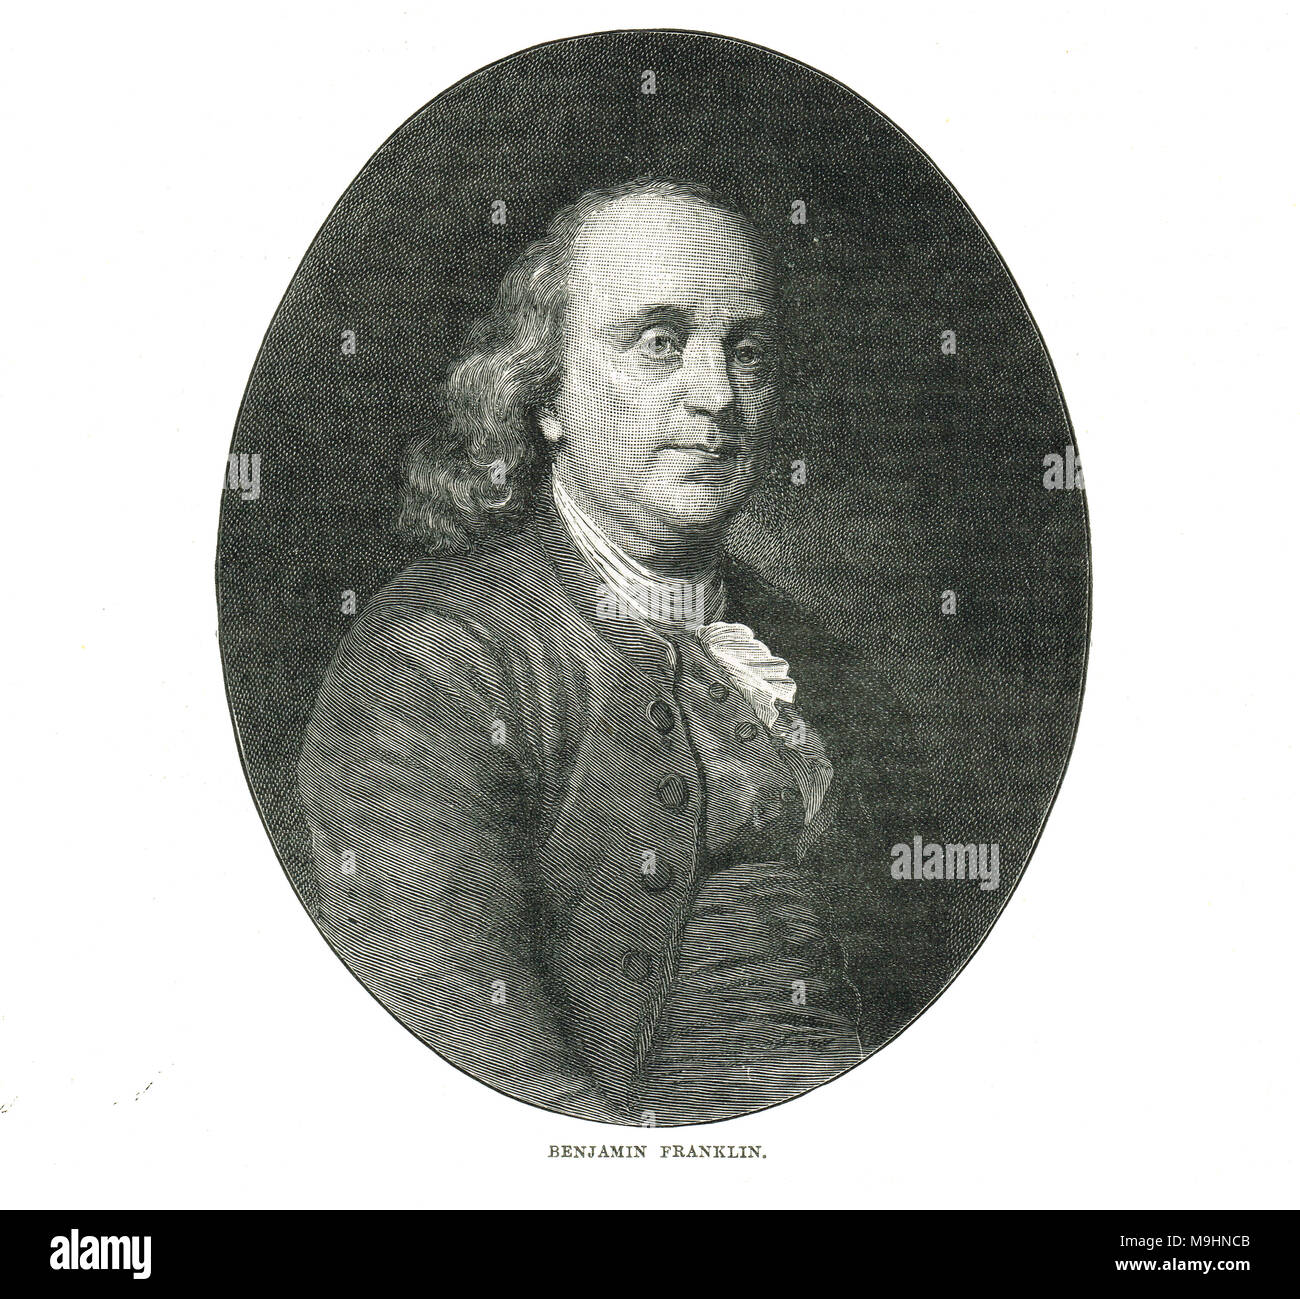 a biography of ben franklin one of the founding fathers of the united states Benjamin franklin is best known as one of the founding fathers who drafted the declaration of independence and the constitution of the united states diplomat, inventor, writer, scientist (1706.